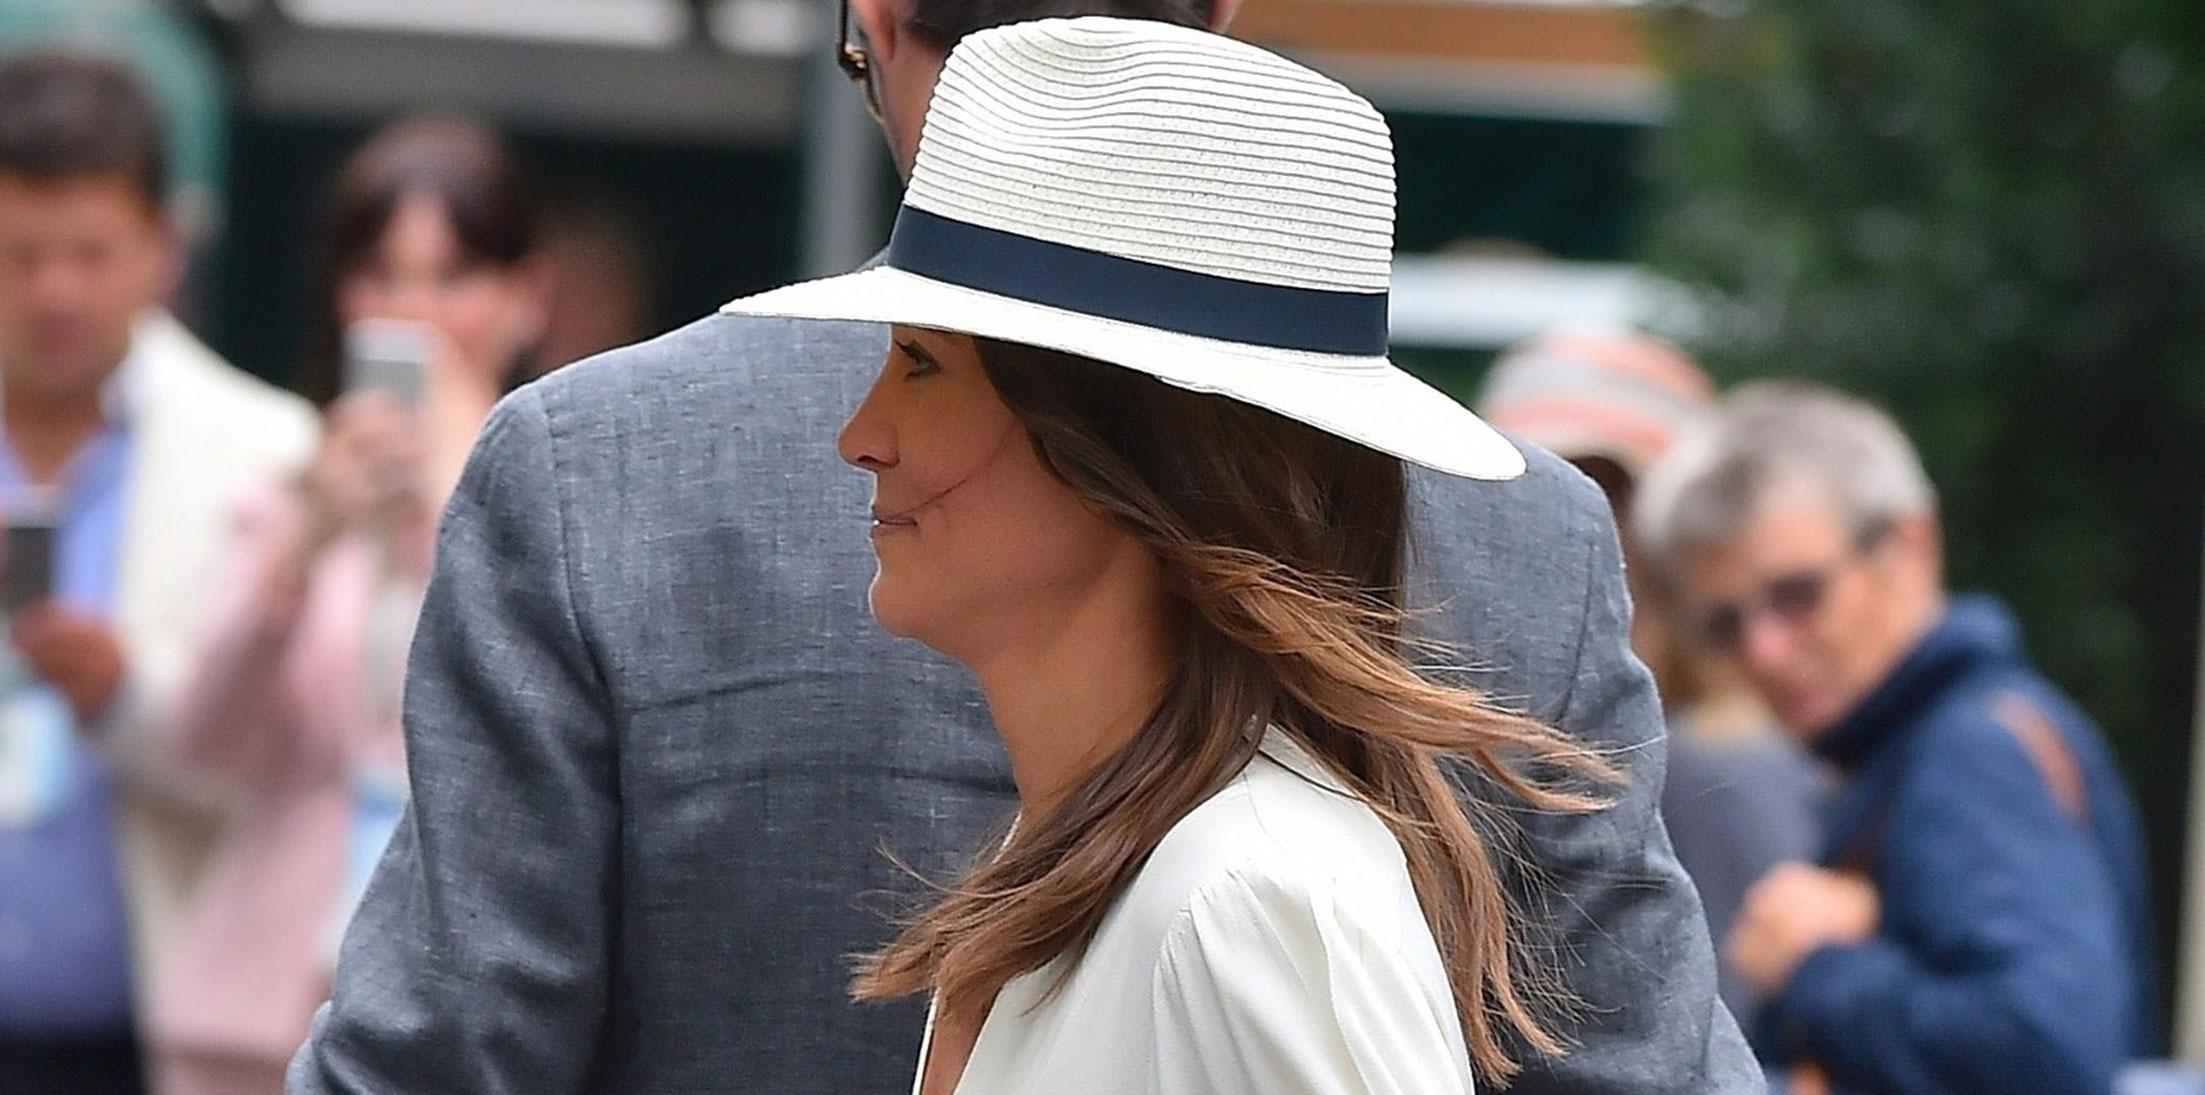 Pippa Middleton James Matthews Wimbledon Photos Long